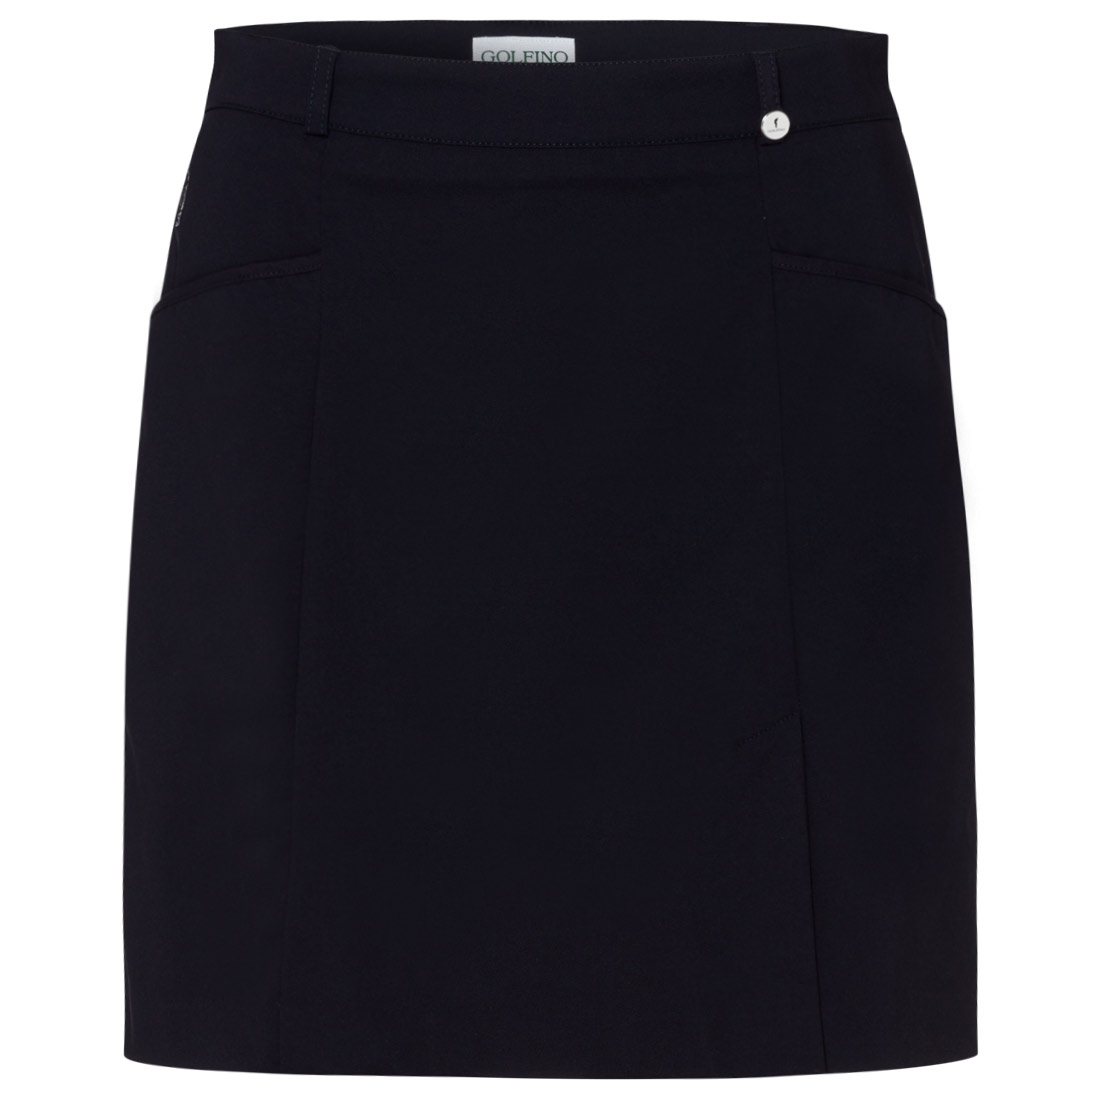 Ladies' skort in stretch fabric